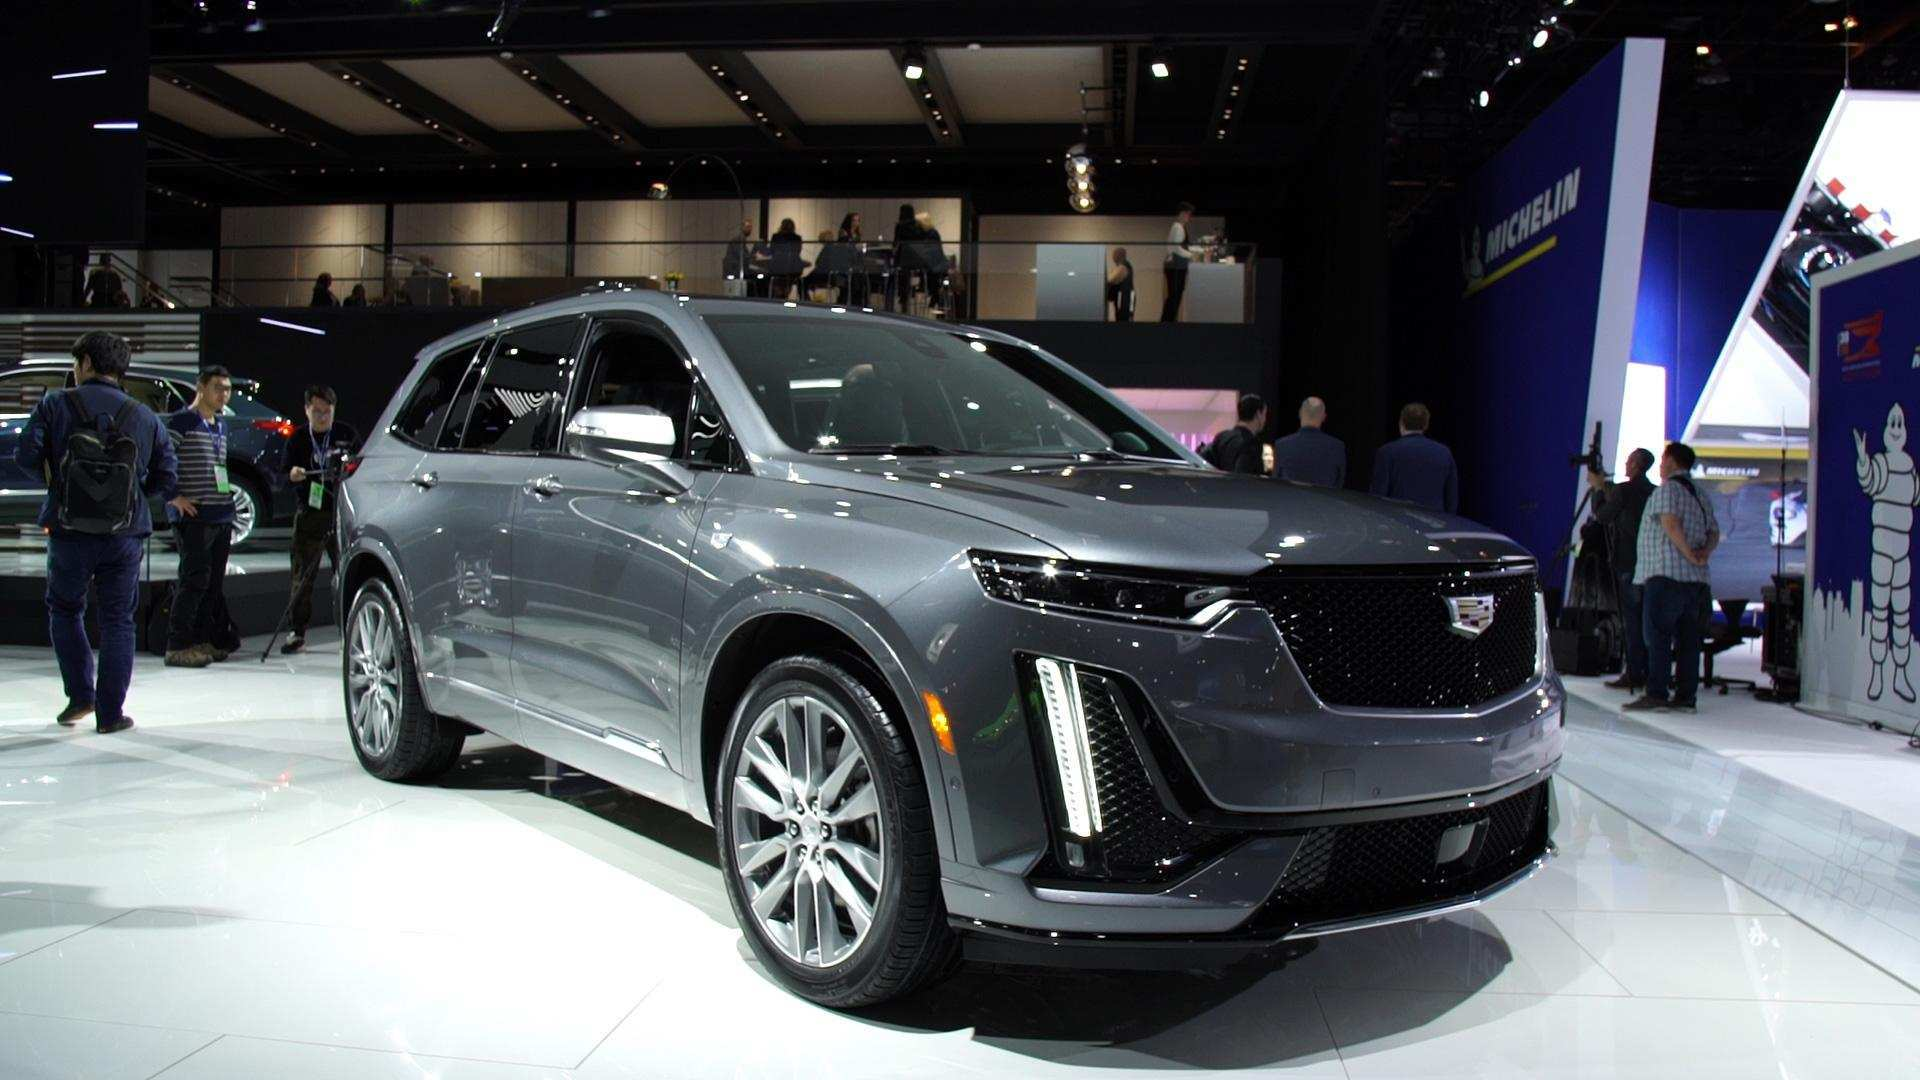 82 New 2020 Cadillac Xt6 Review Price Design And Review